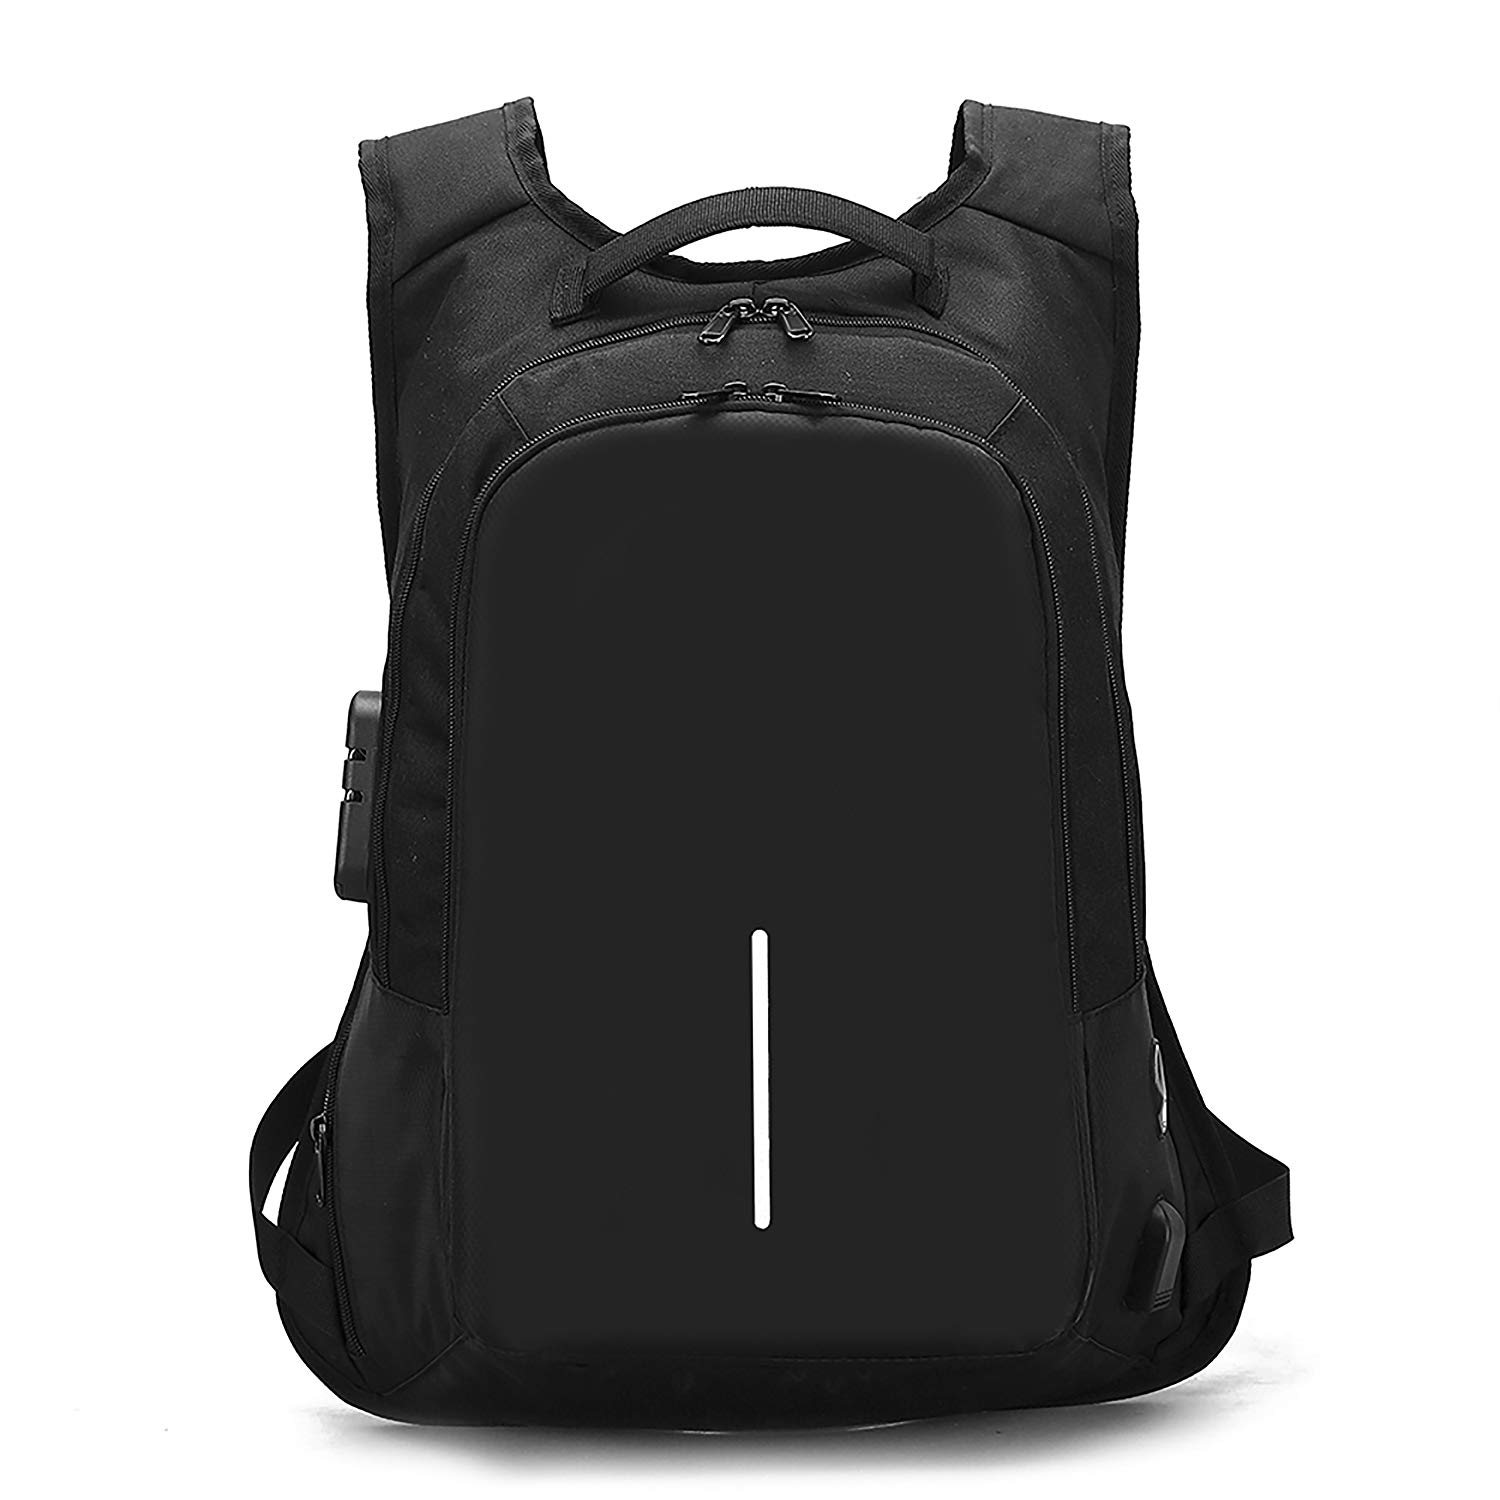 Anti-Theft Smart Travel Backpack with USB Charging Port & Headphone Hole Business Rucksack College Student Casual Daypack for Men Women (JSS11_Black)